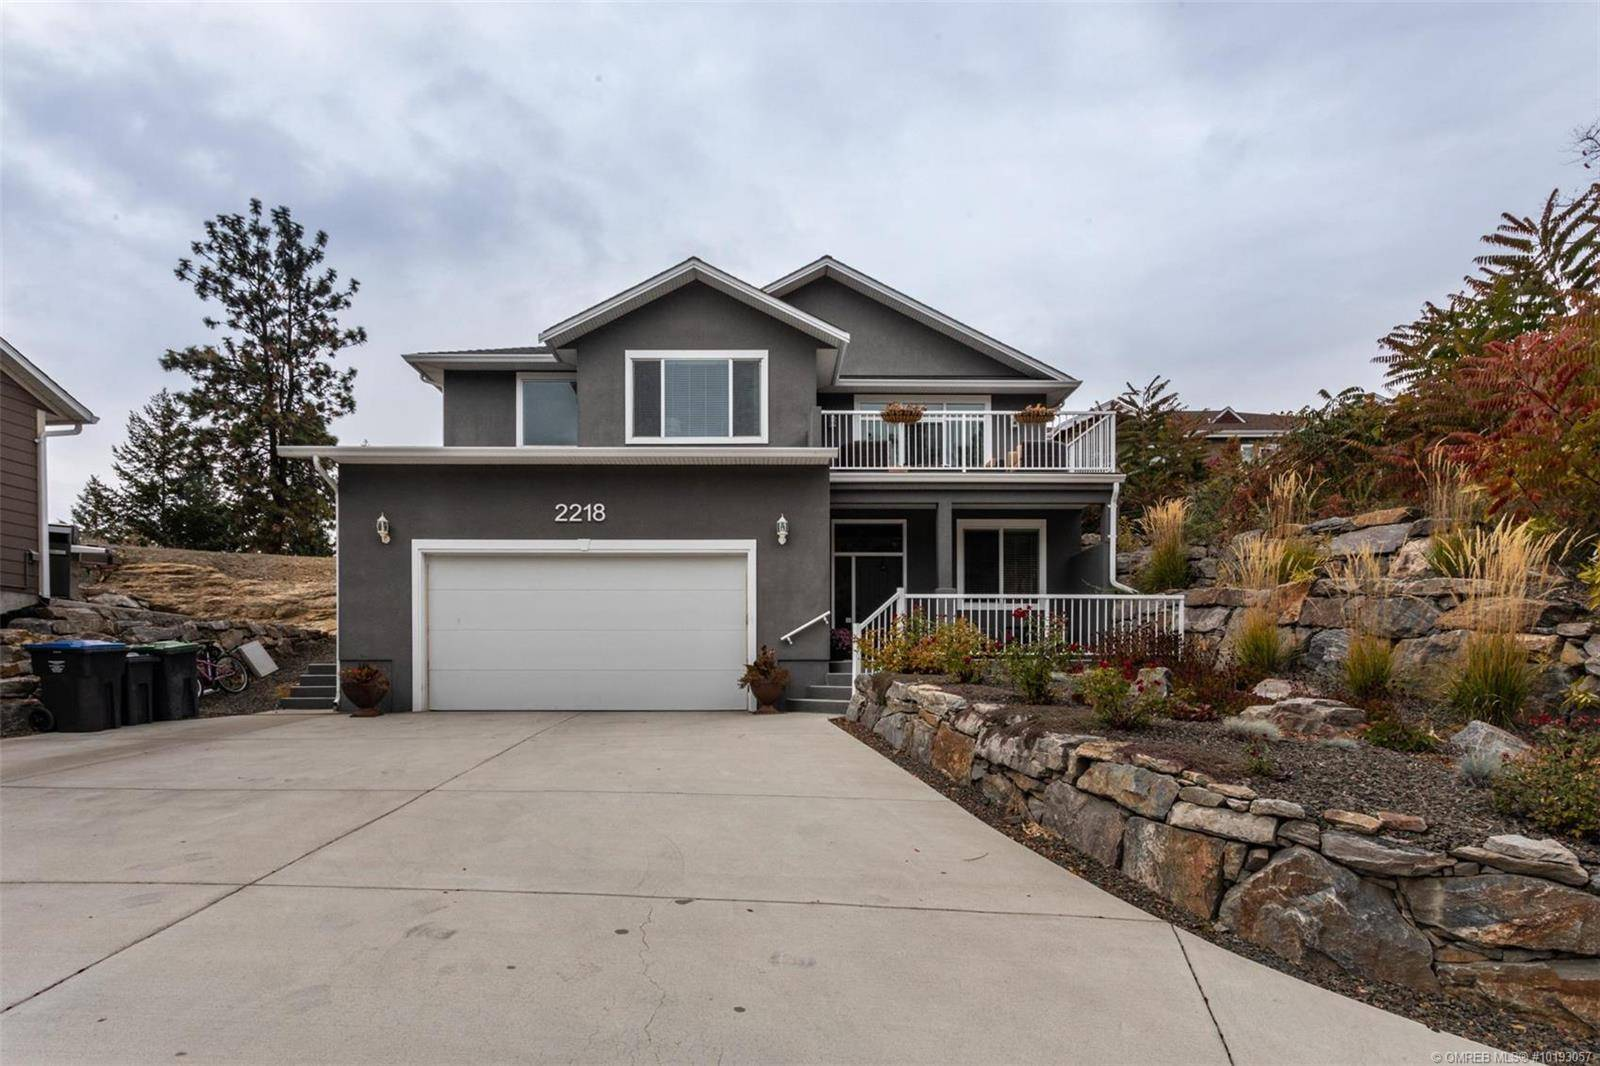 House for sale at 2218 Upper Sundance Dr West Kelowna British Columbia - MLS: 10193057